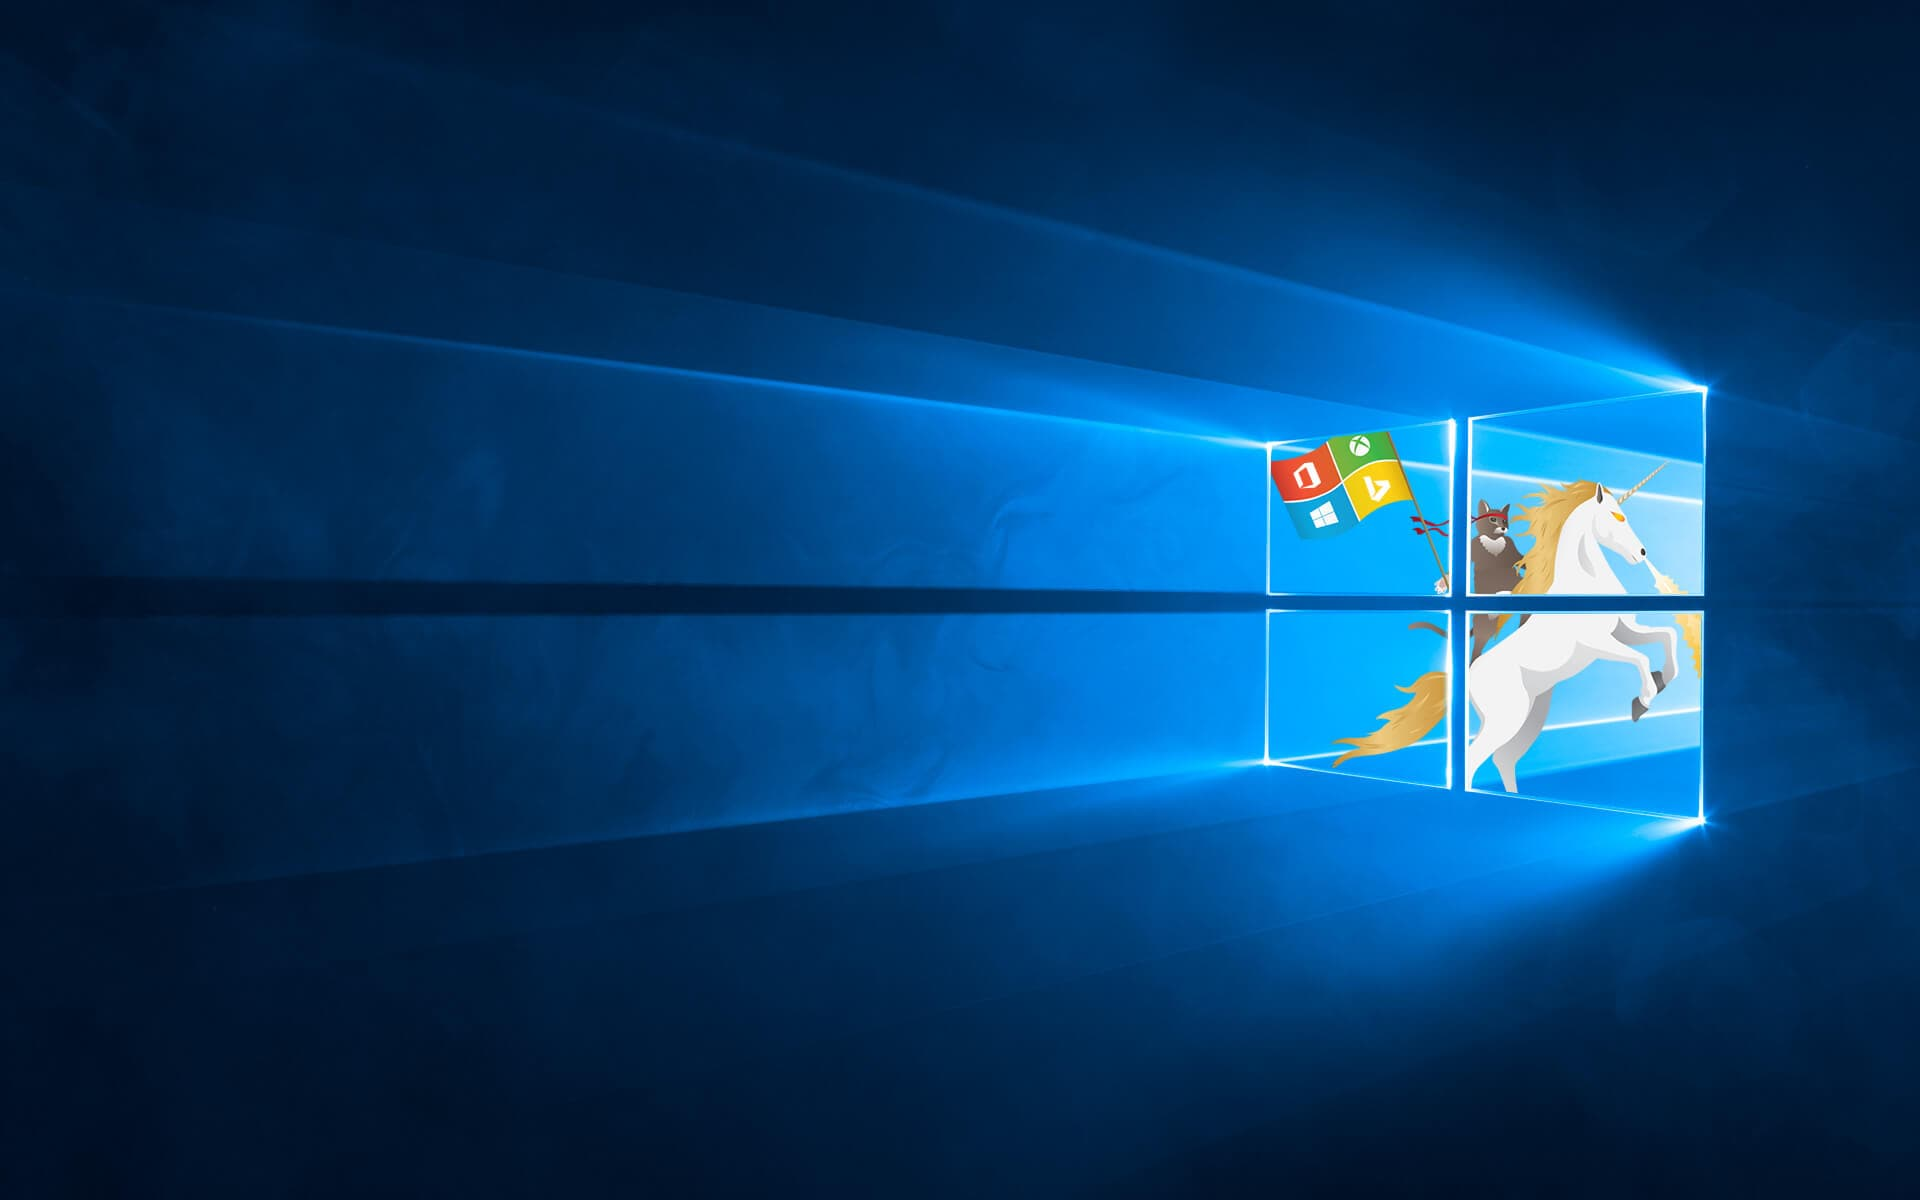 Sfondi windows 10 gatti